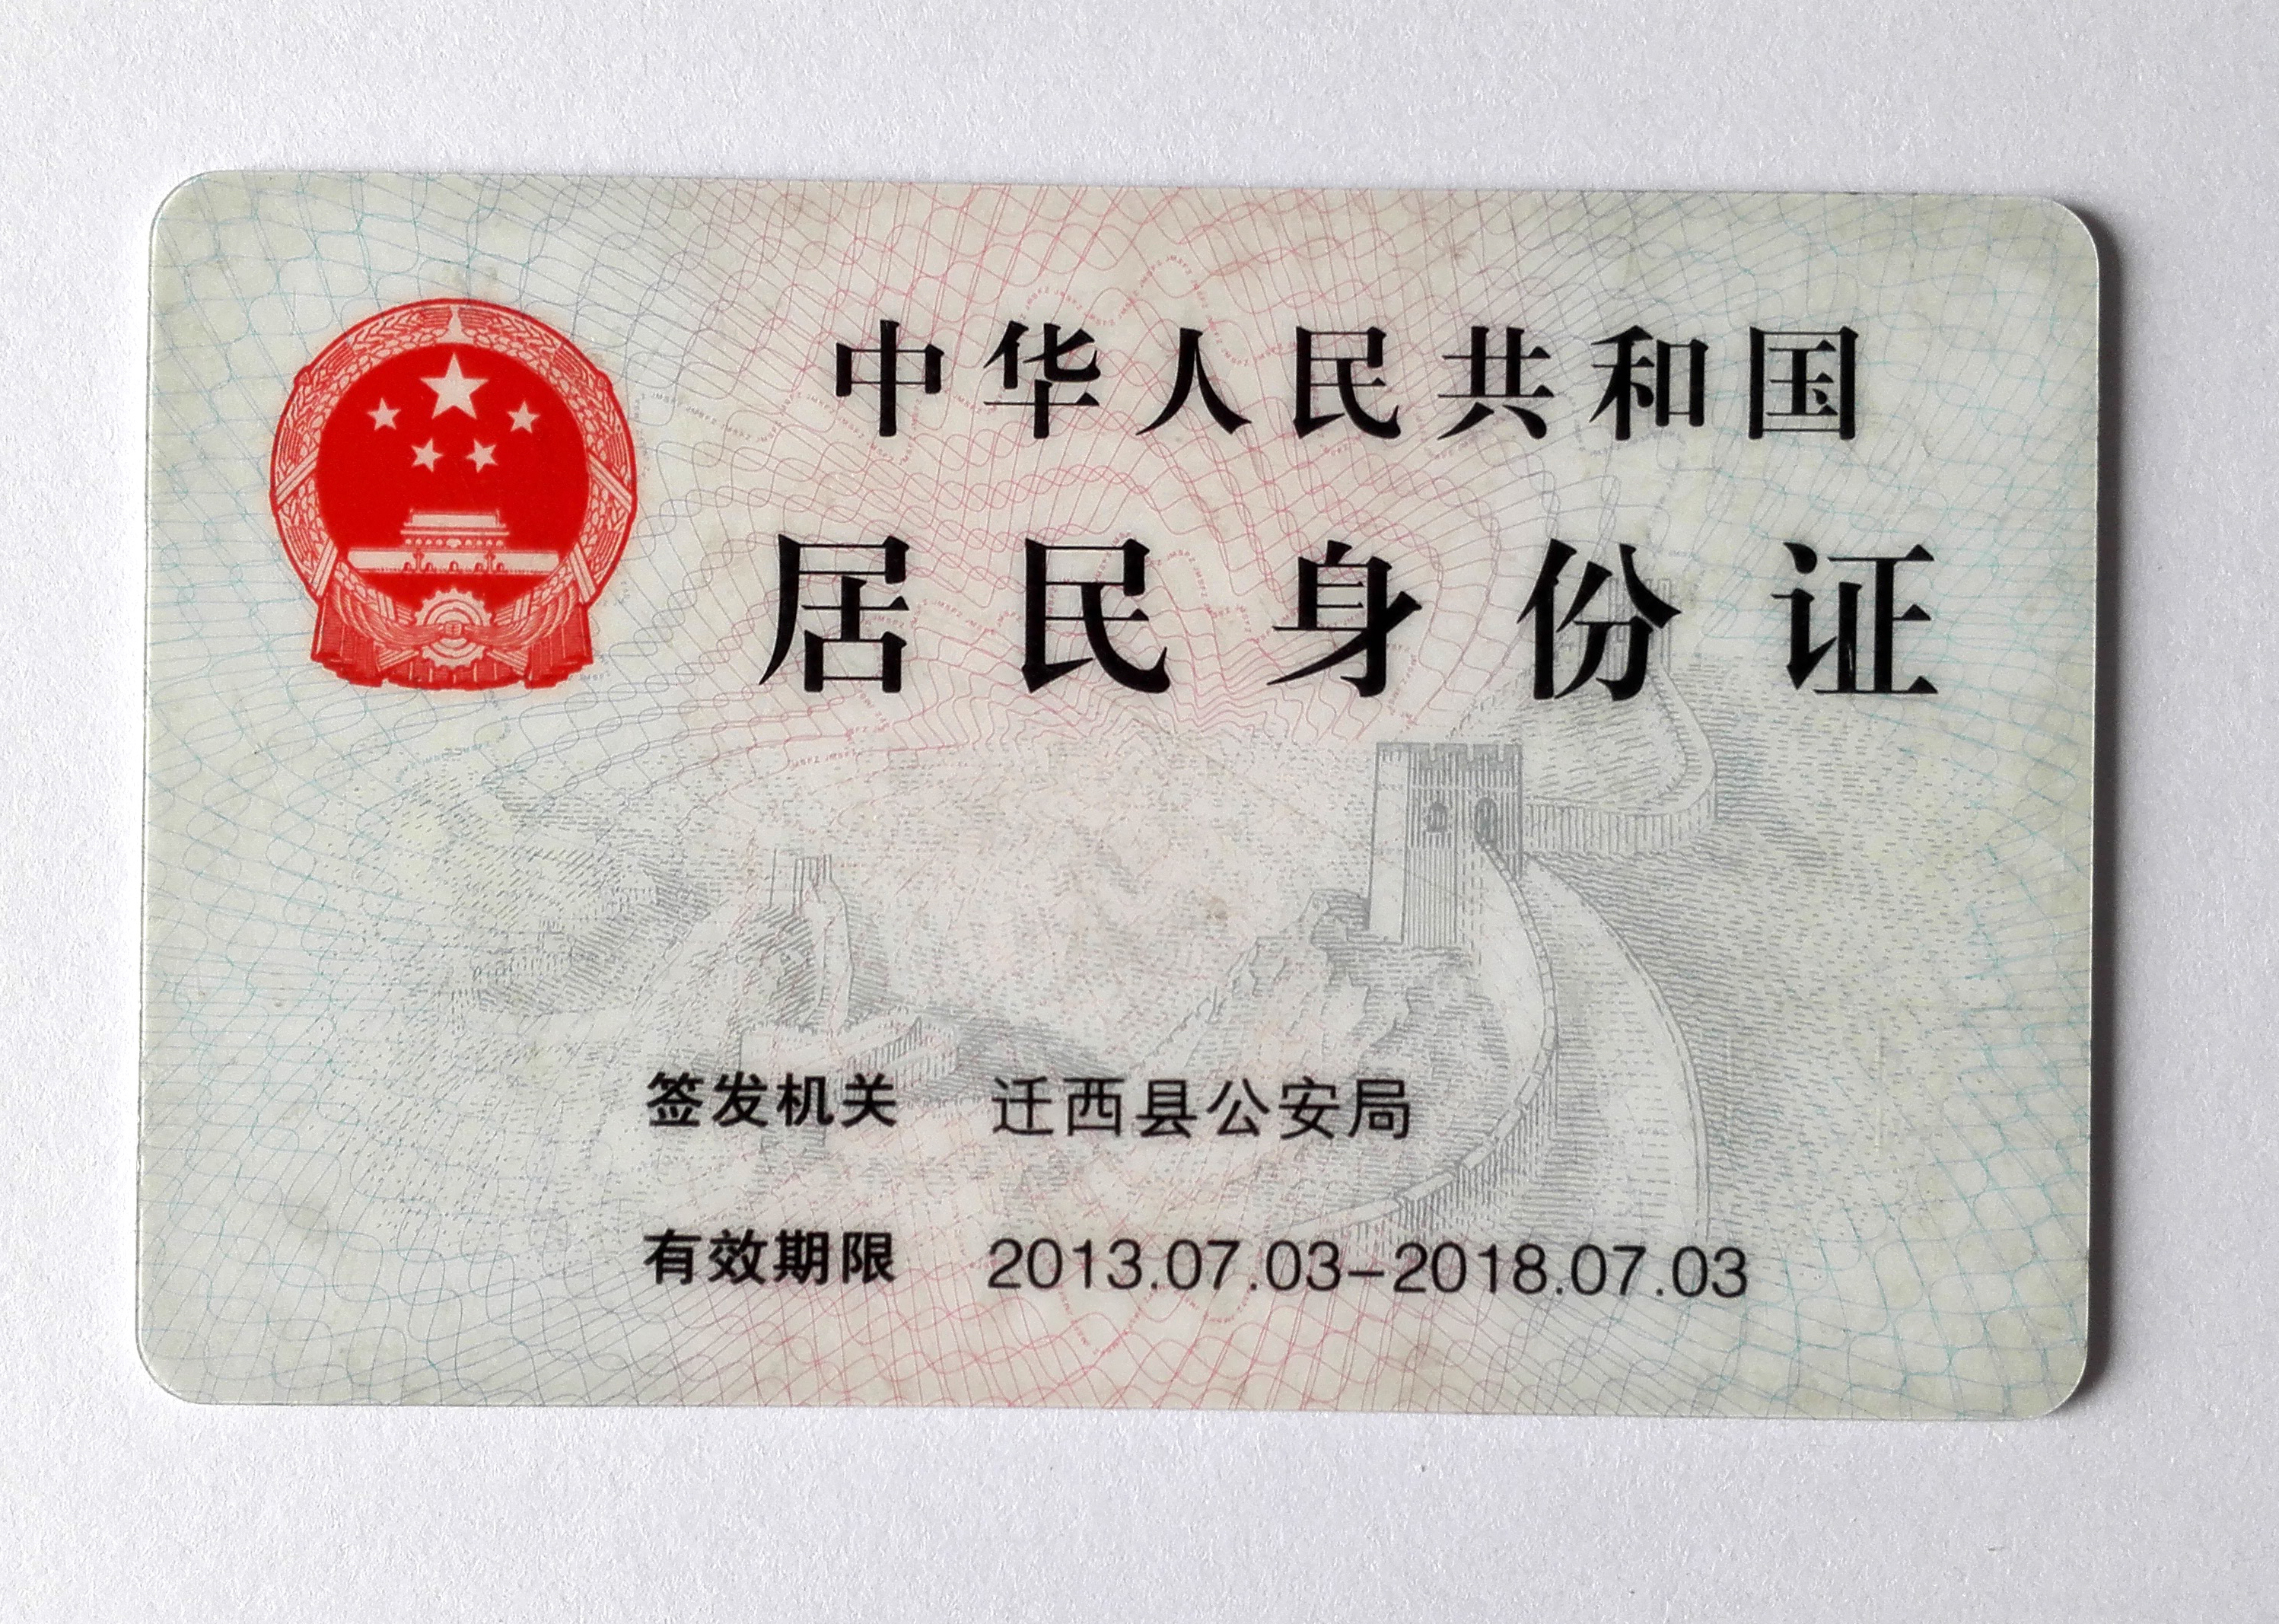 Permanent Resident Card Number Back Identity card number[edit]